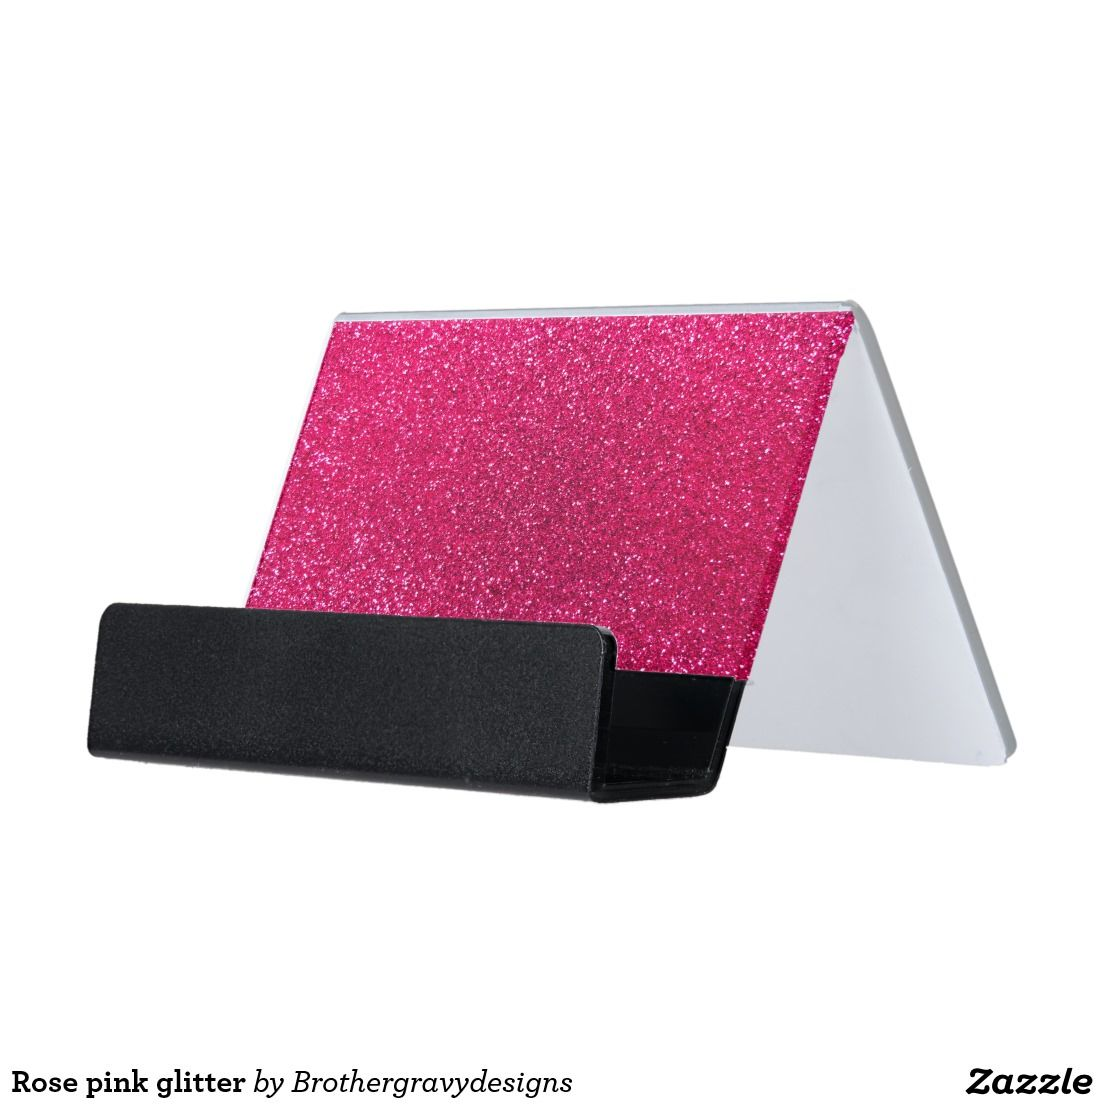 Rose pink glitter desk business card holder | Stylish Office Decor ...